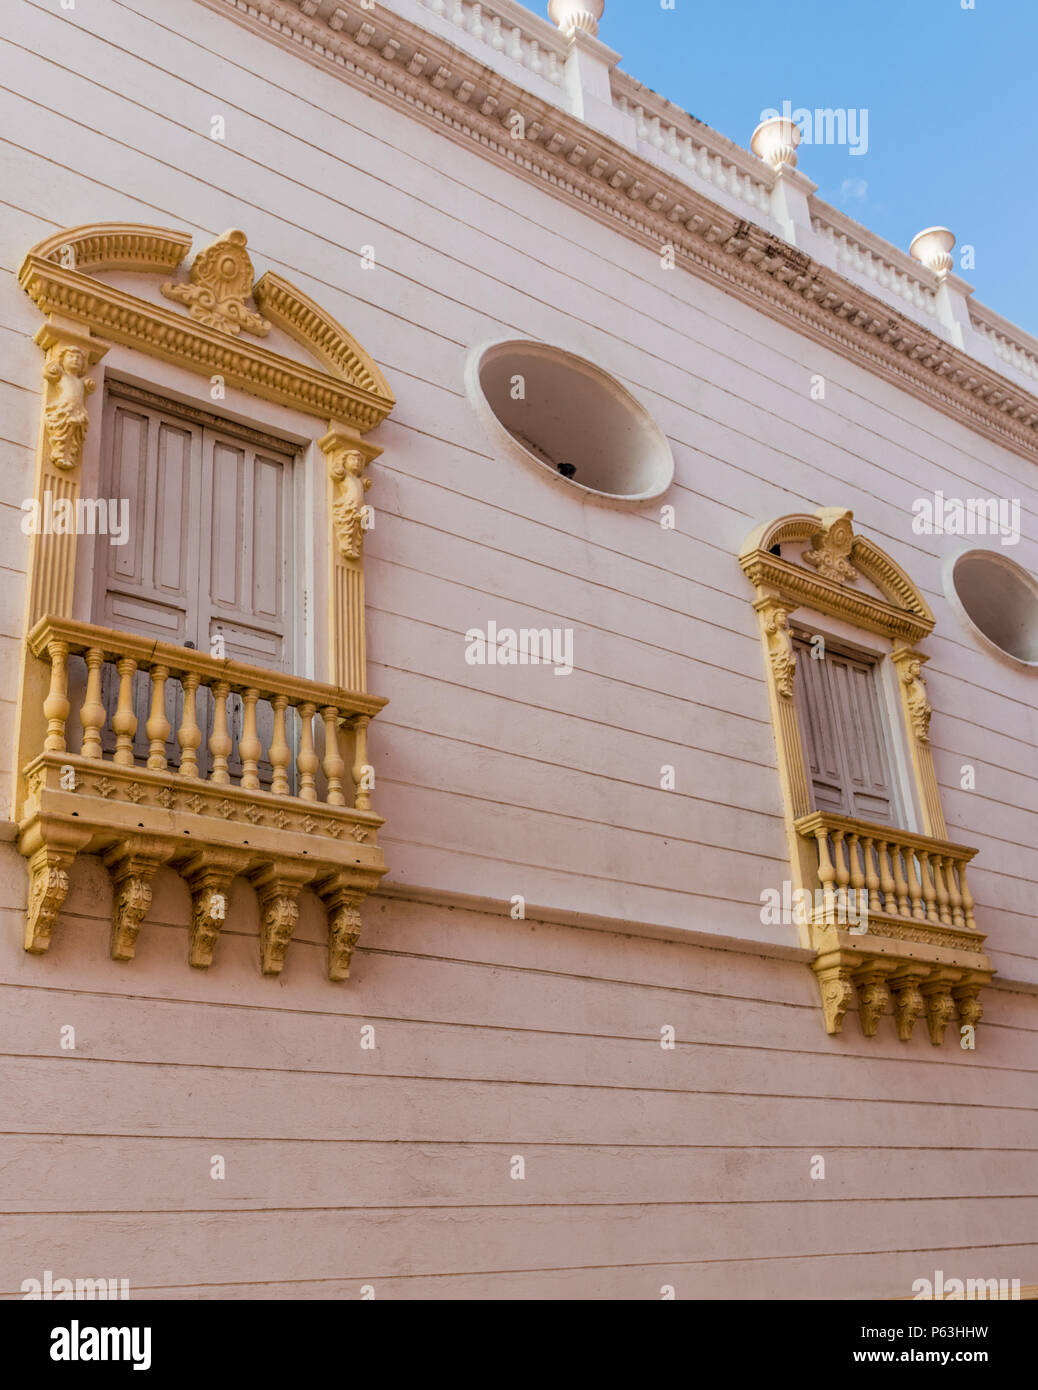 A typical view in Cartagena colombia - Stock Image